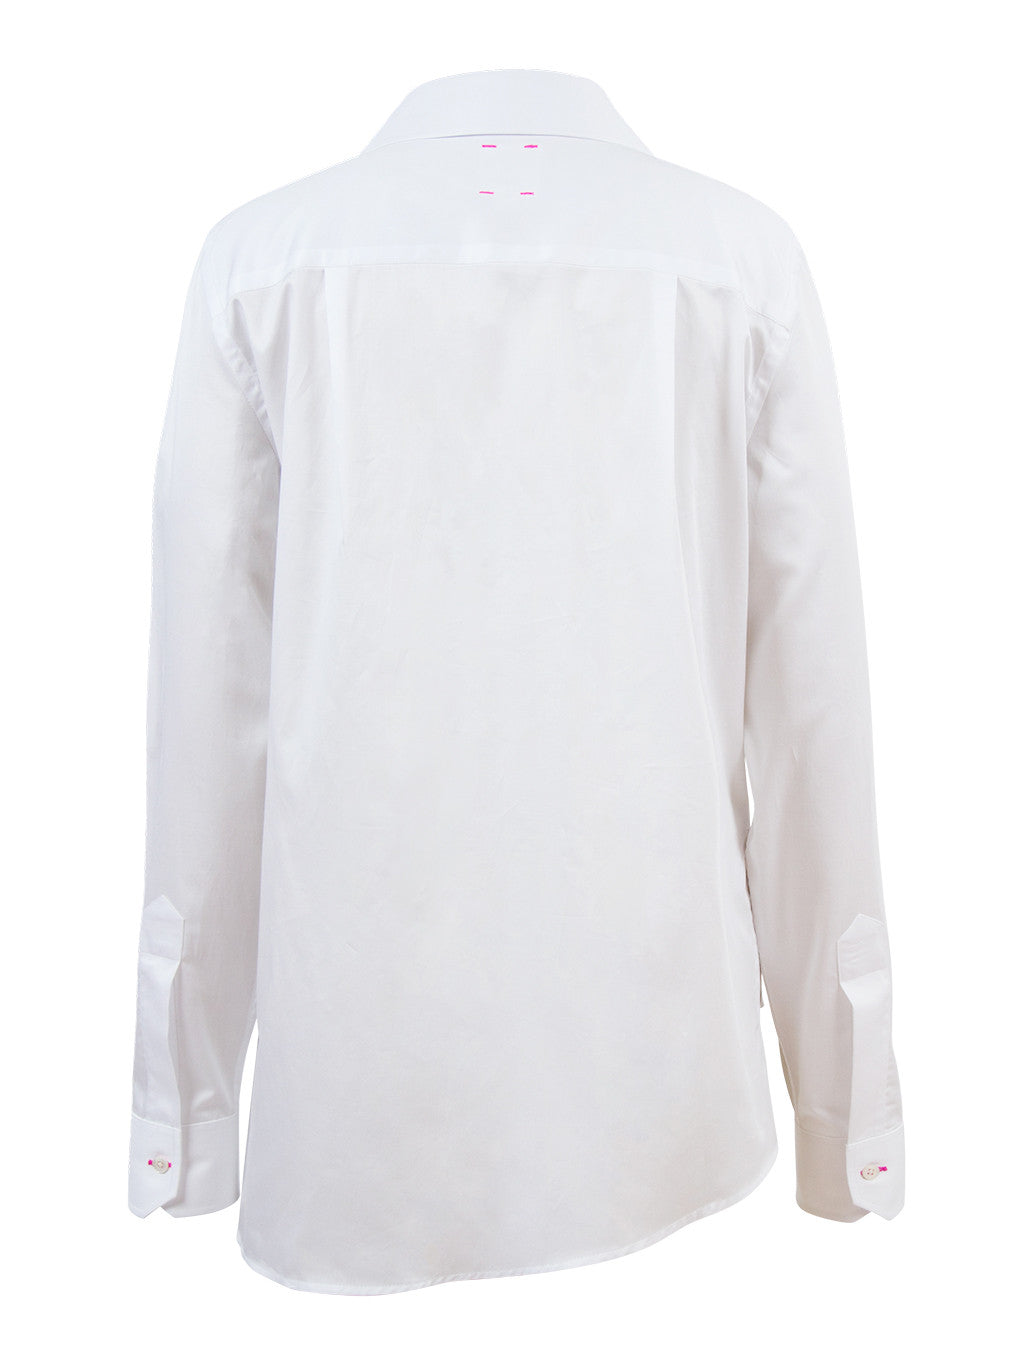 White Asymmetric Tailored Shirt